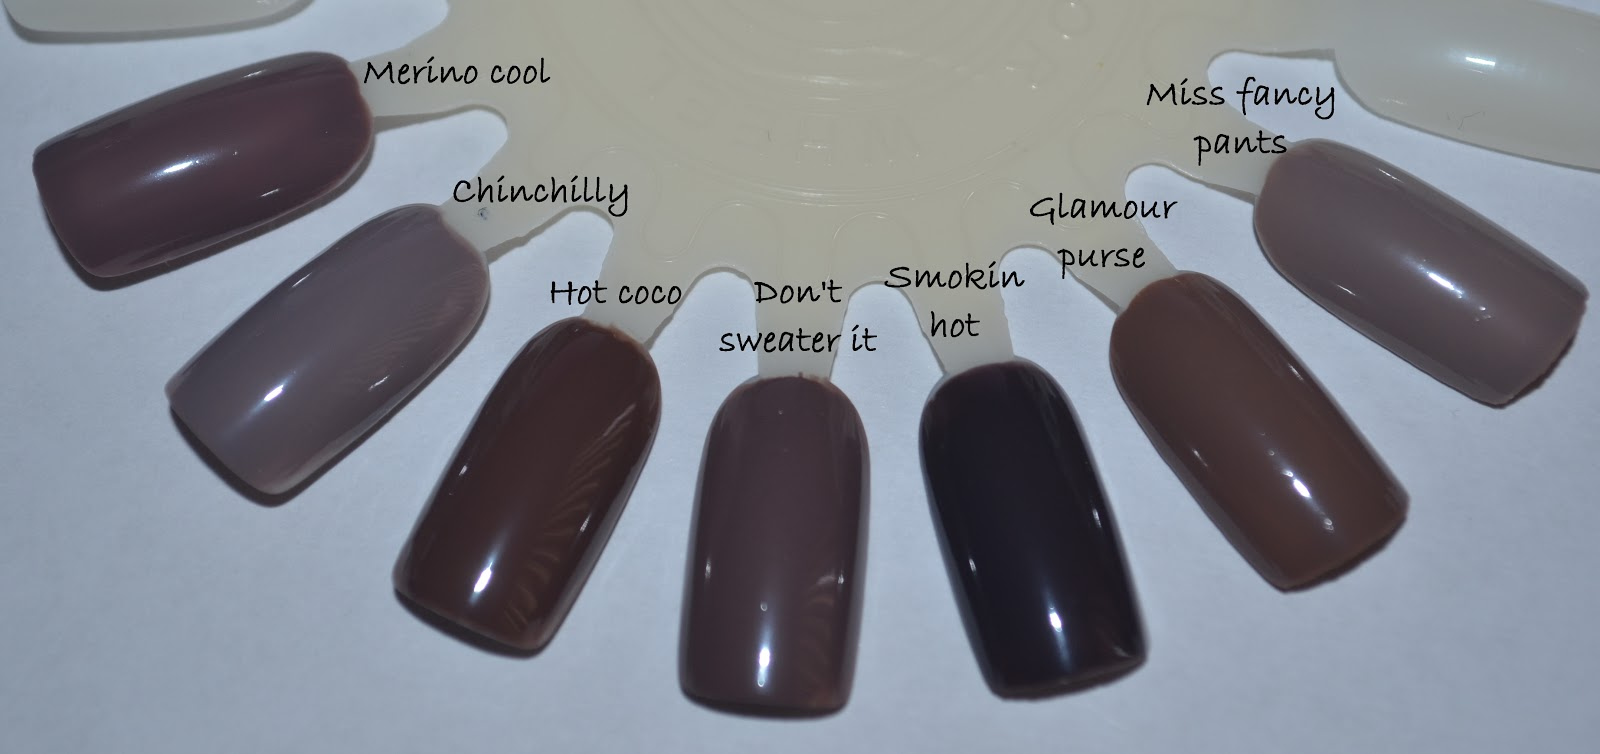 Essie Merino Cool Vs Chinchilly - More info